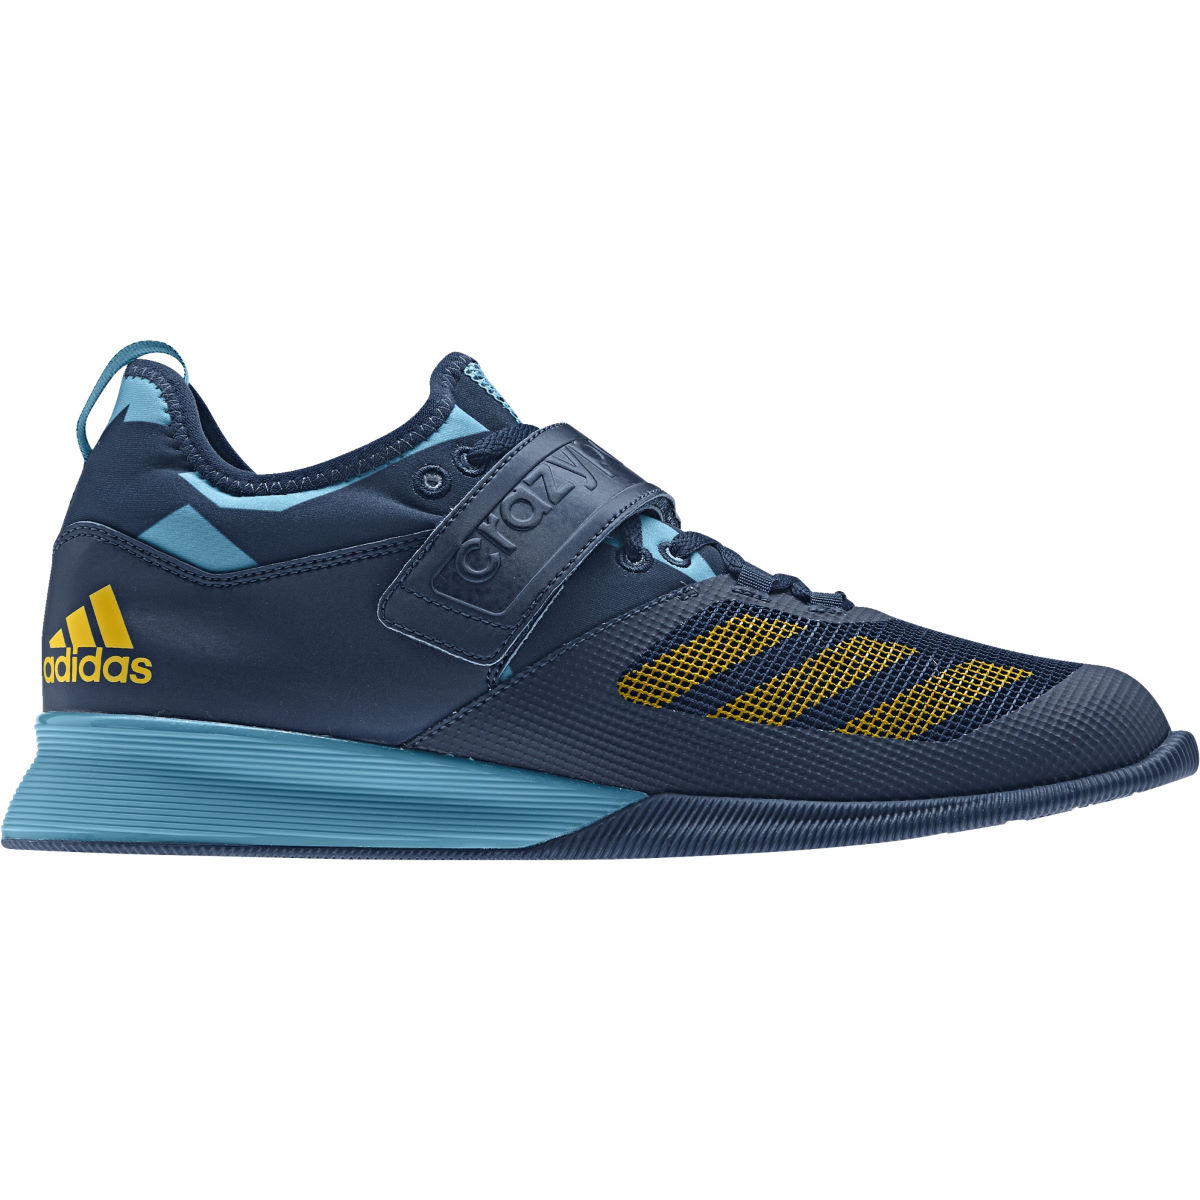 Chaussures Adidas Crazy Power - UK 13 Blue/Yellow